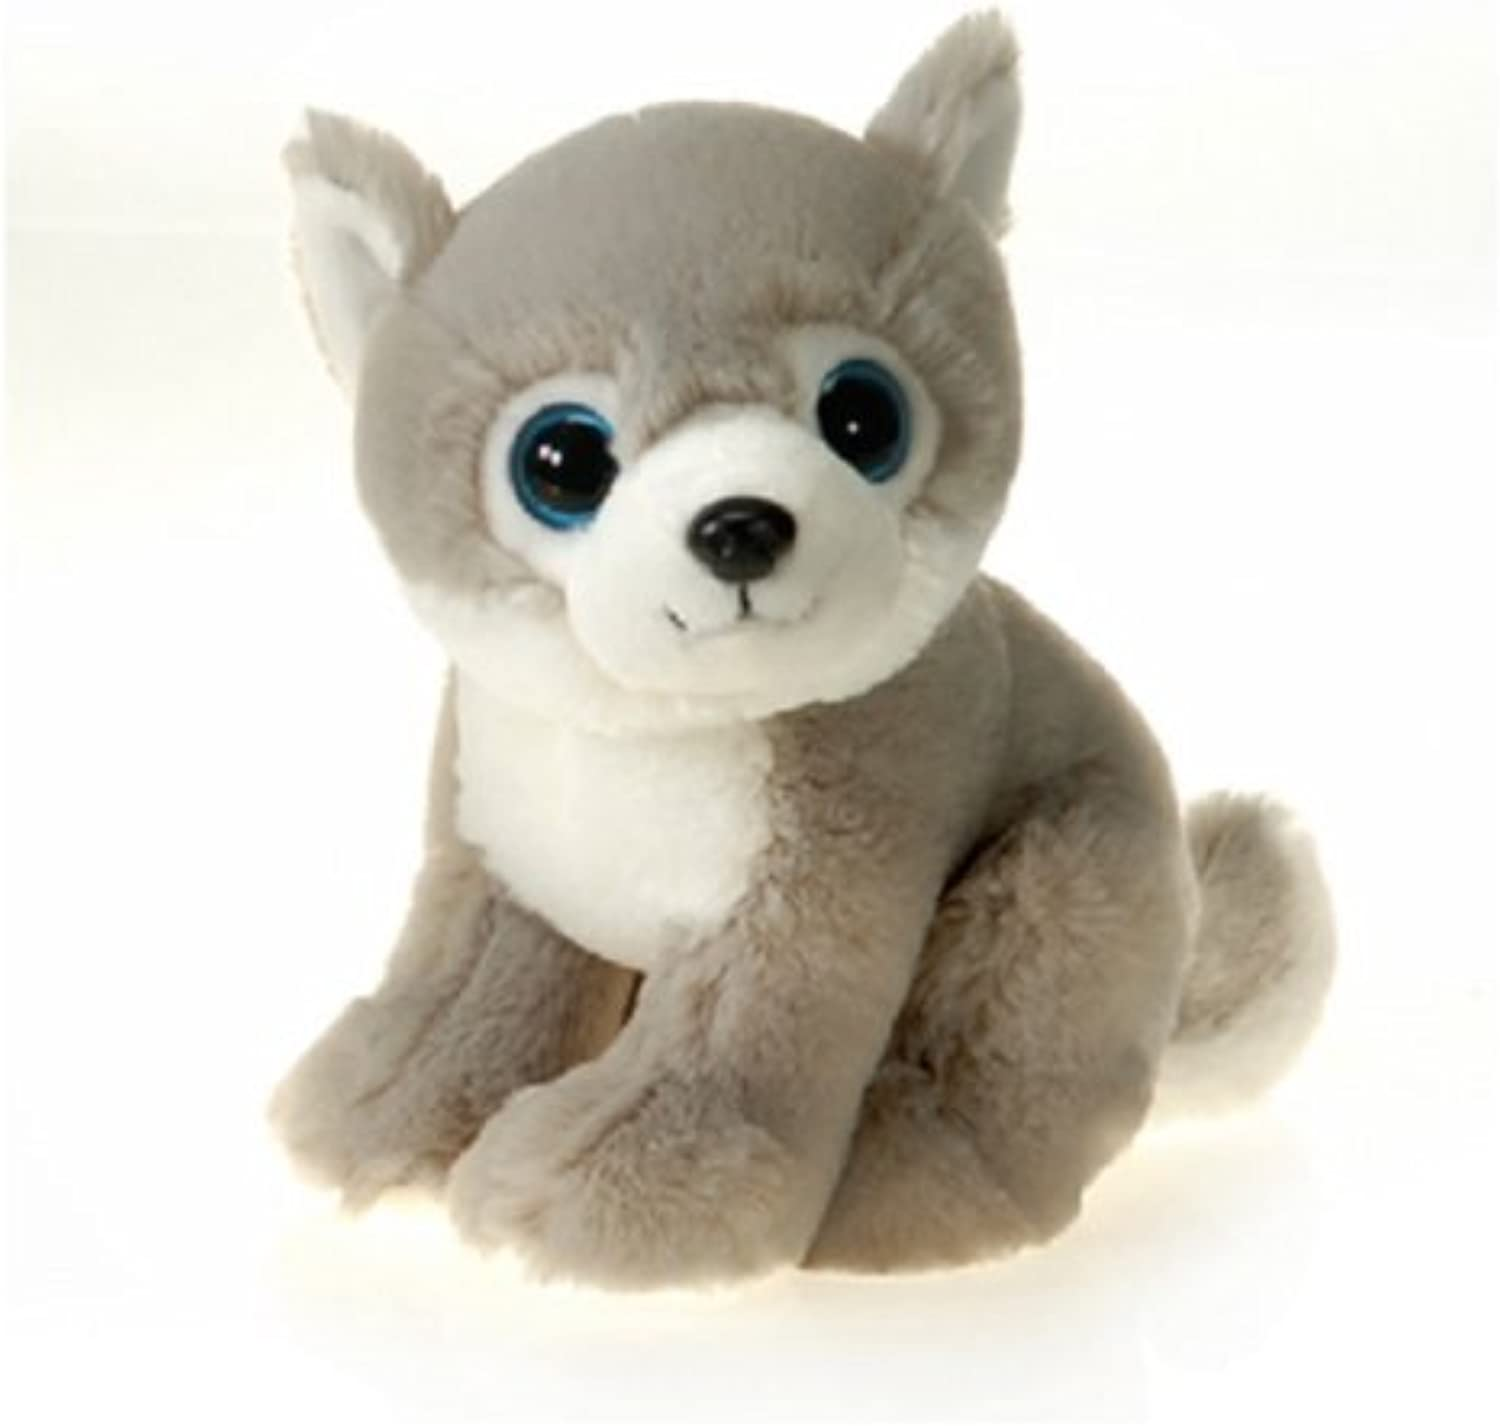 9 Sitting Wolf with Big Eyes Plush Stuffed Stuffed Stuffed Animal